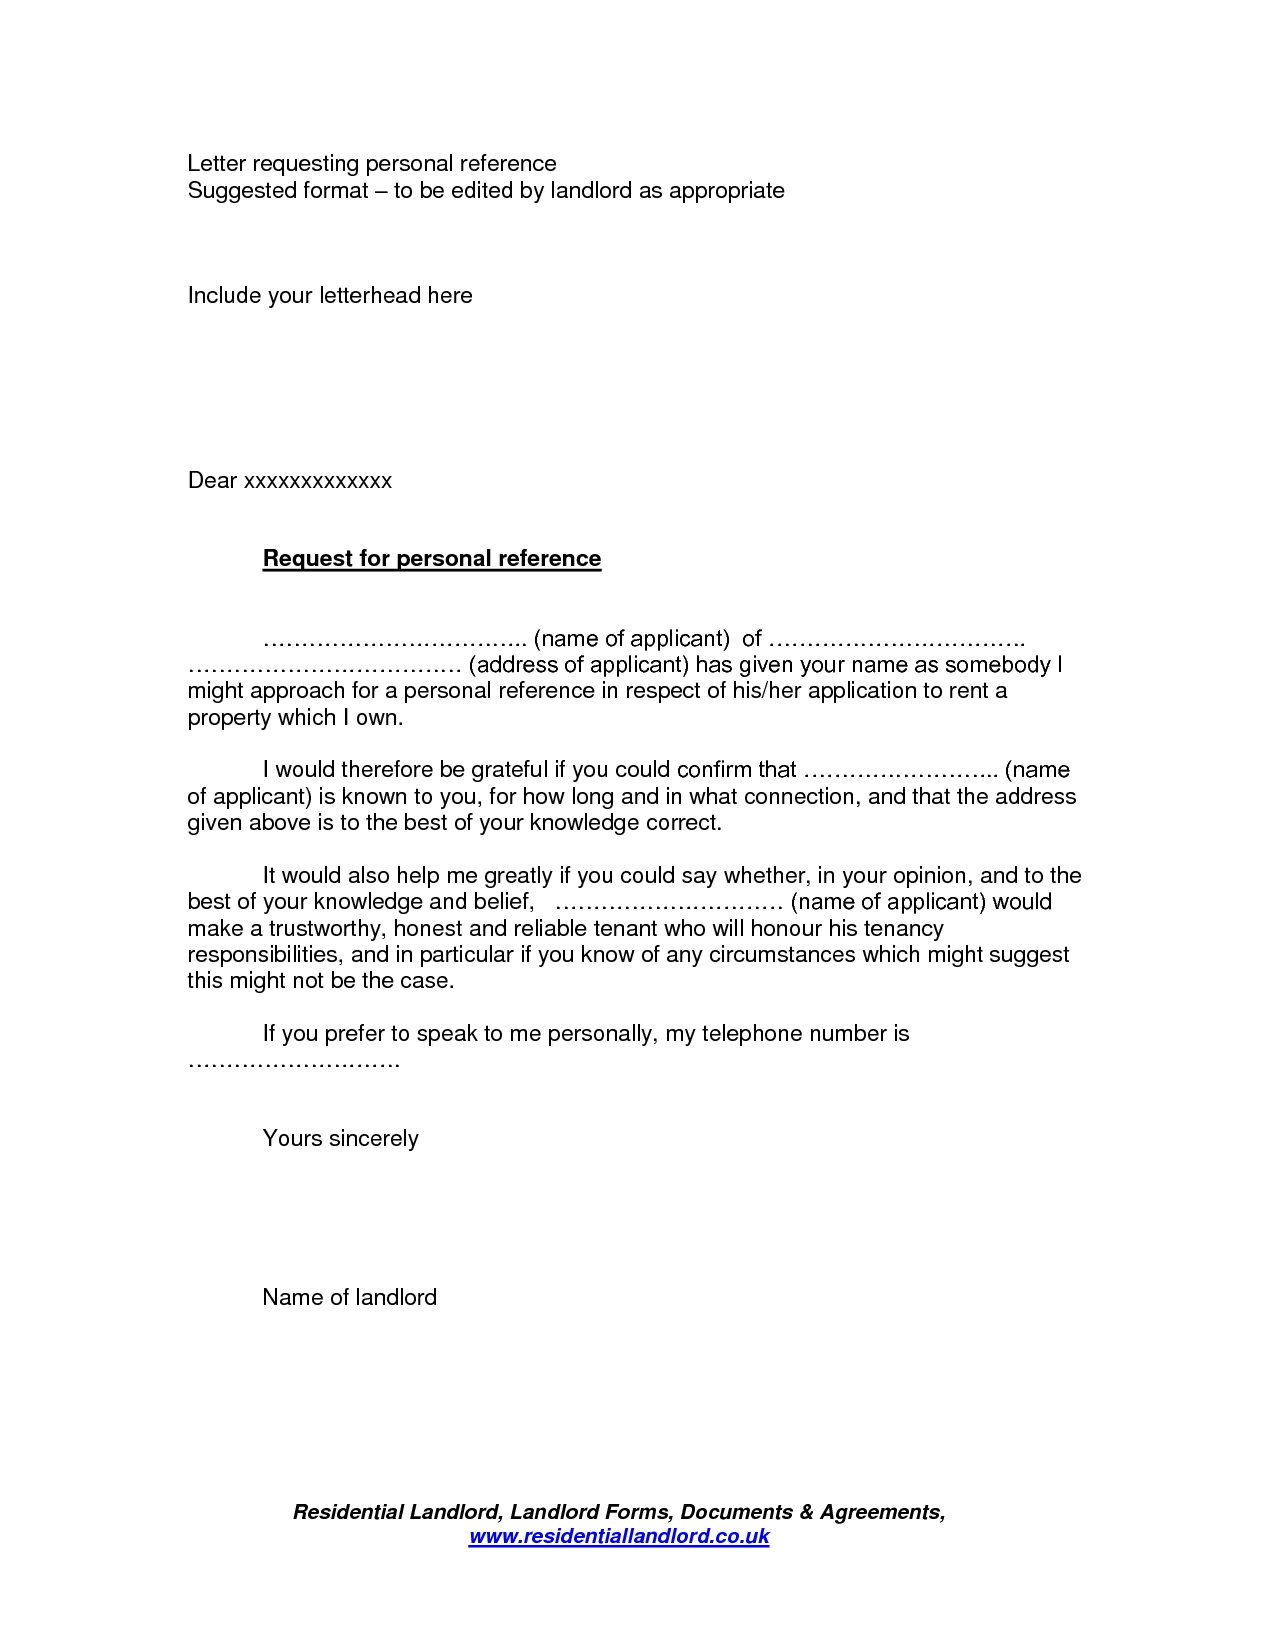 Rental Reference Letter Template - Rental Reference Letter From Friend Pdf format